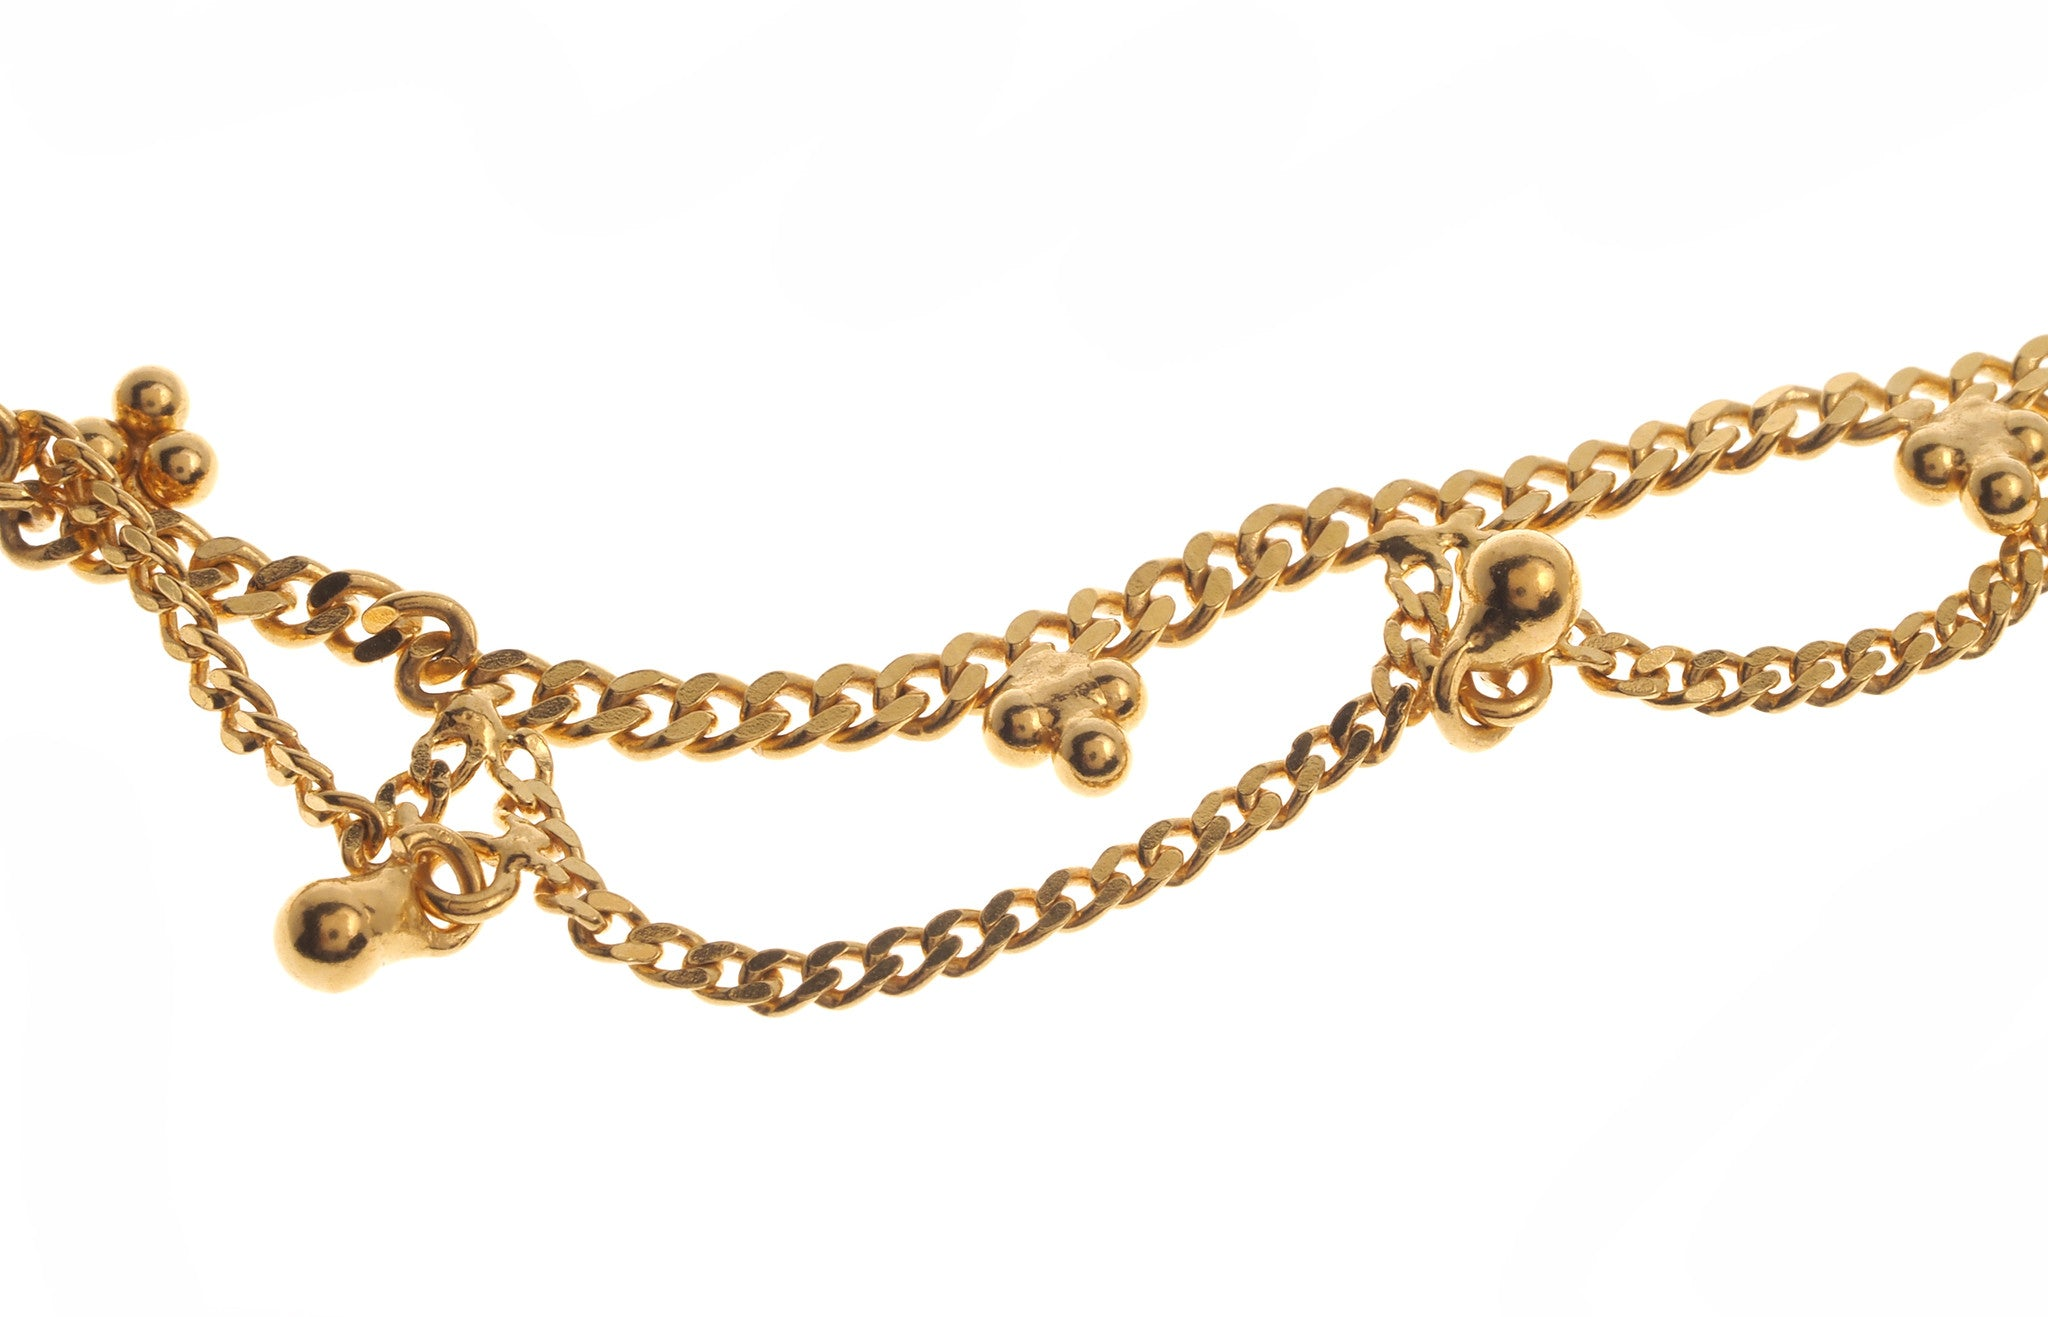 gold anklet yellow zoe bracelet save lyst chicco karat in metallic jewelry star fullscreen view